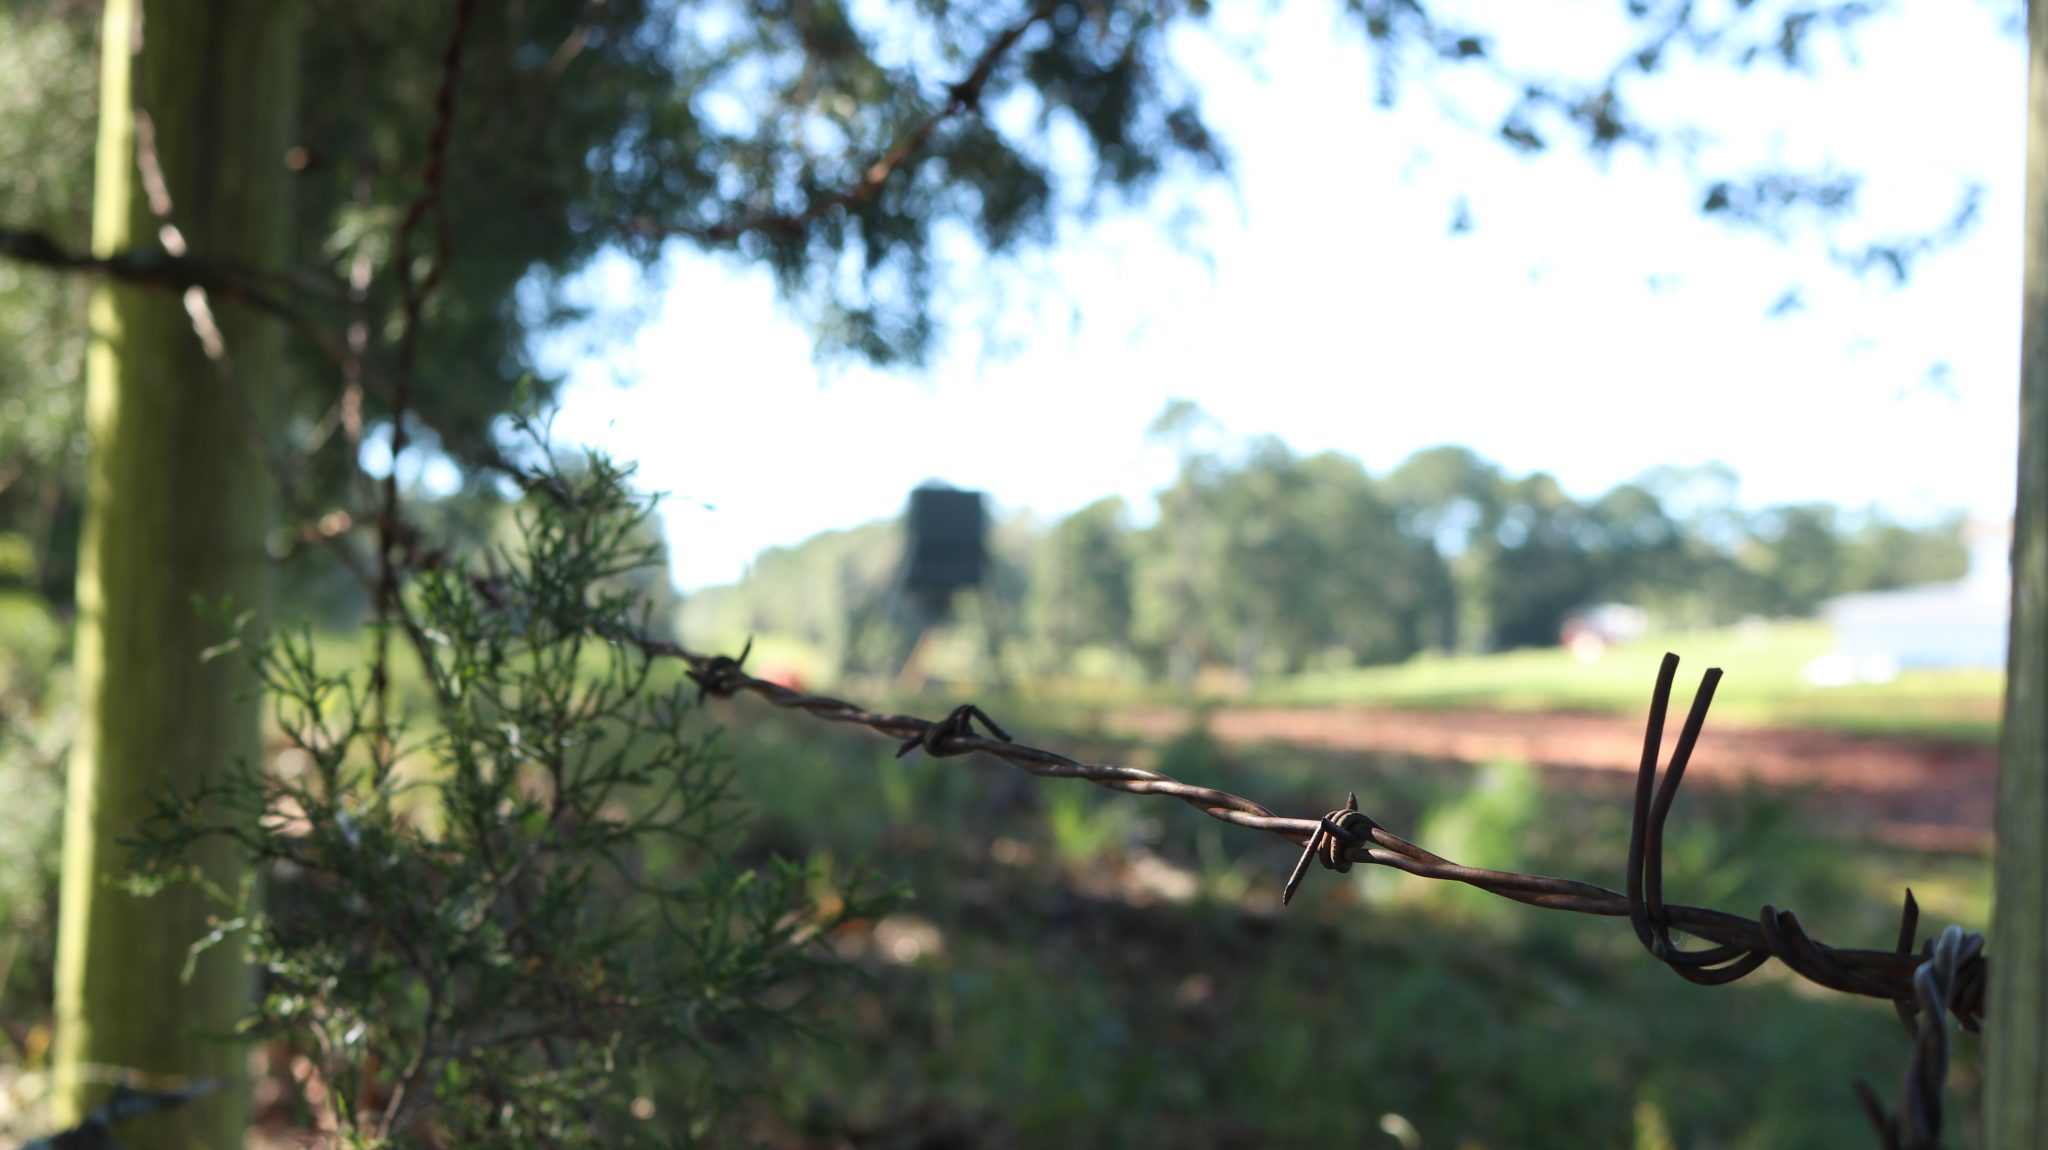 Barbed wire fence on a property line.